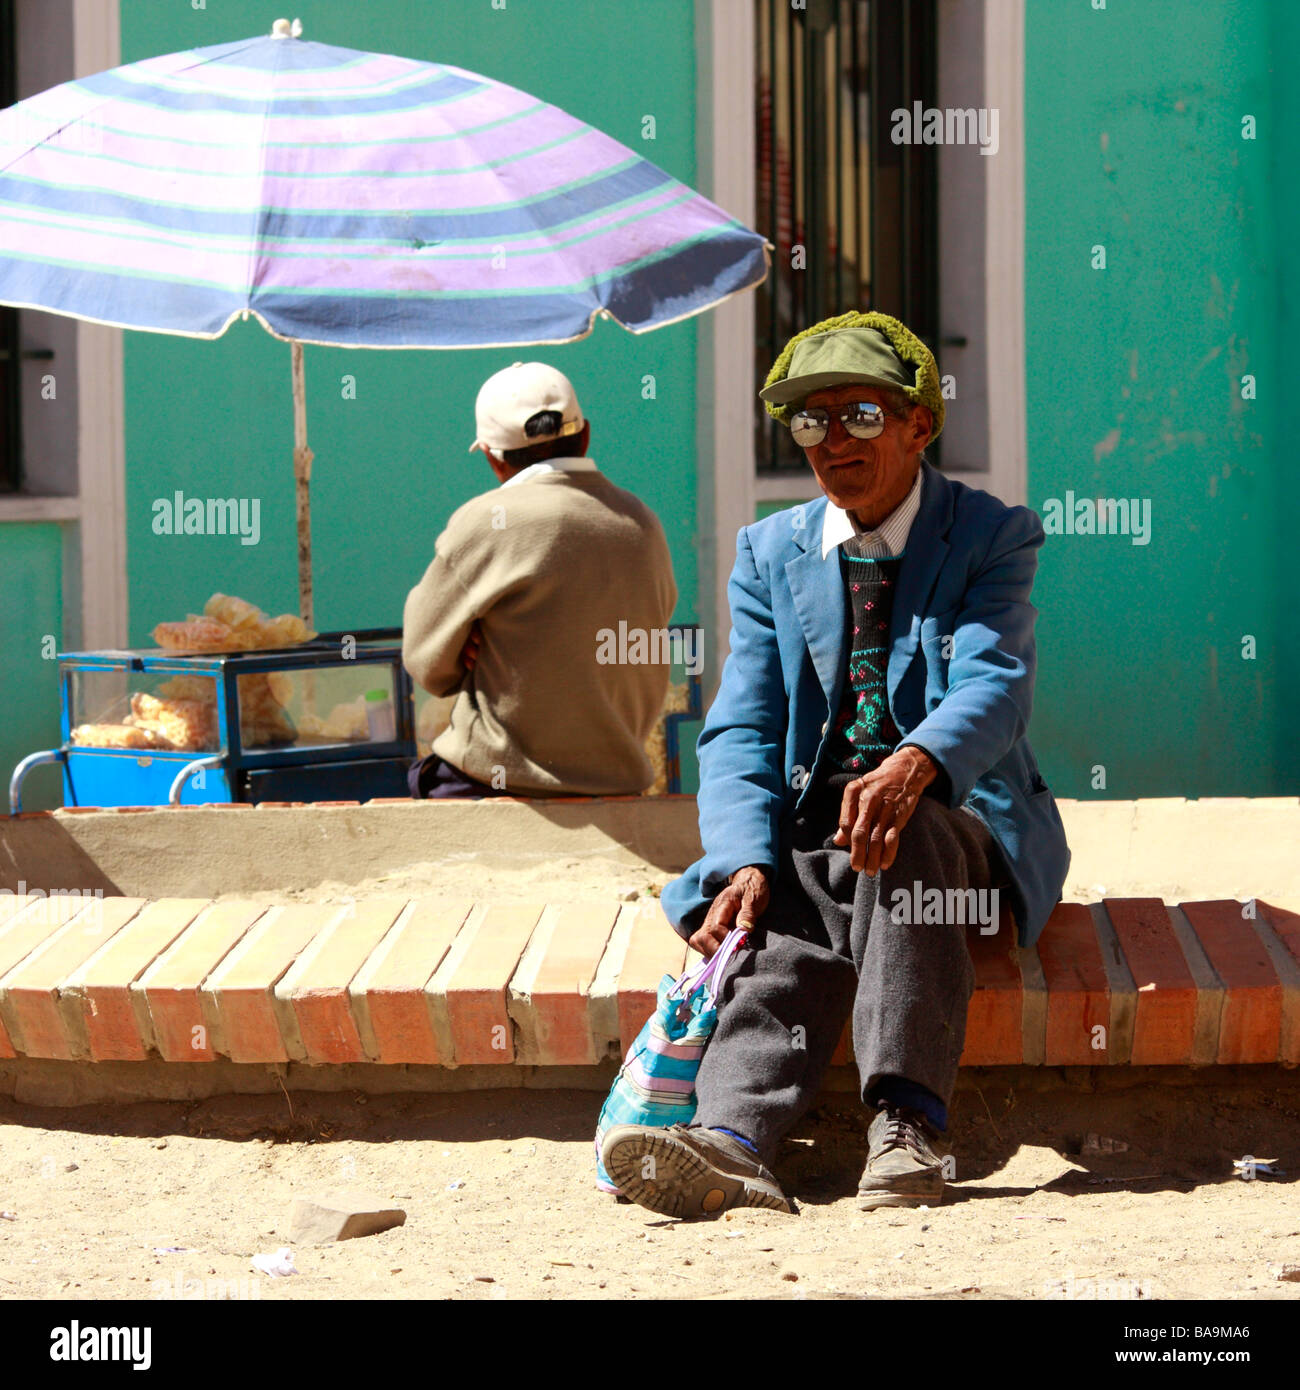 March Holidays In Bolivia: Traditional Bolivian Man Stock Photos & Traditional